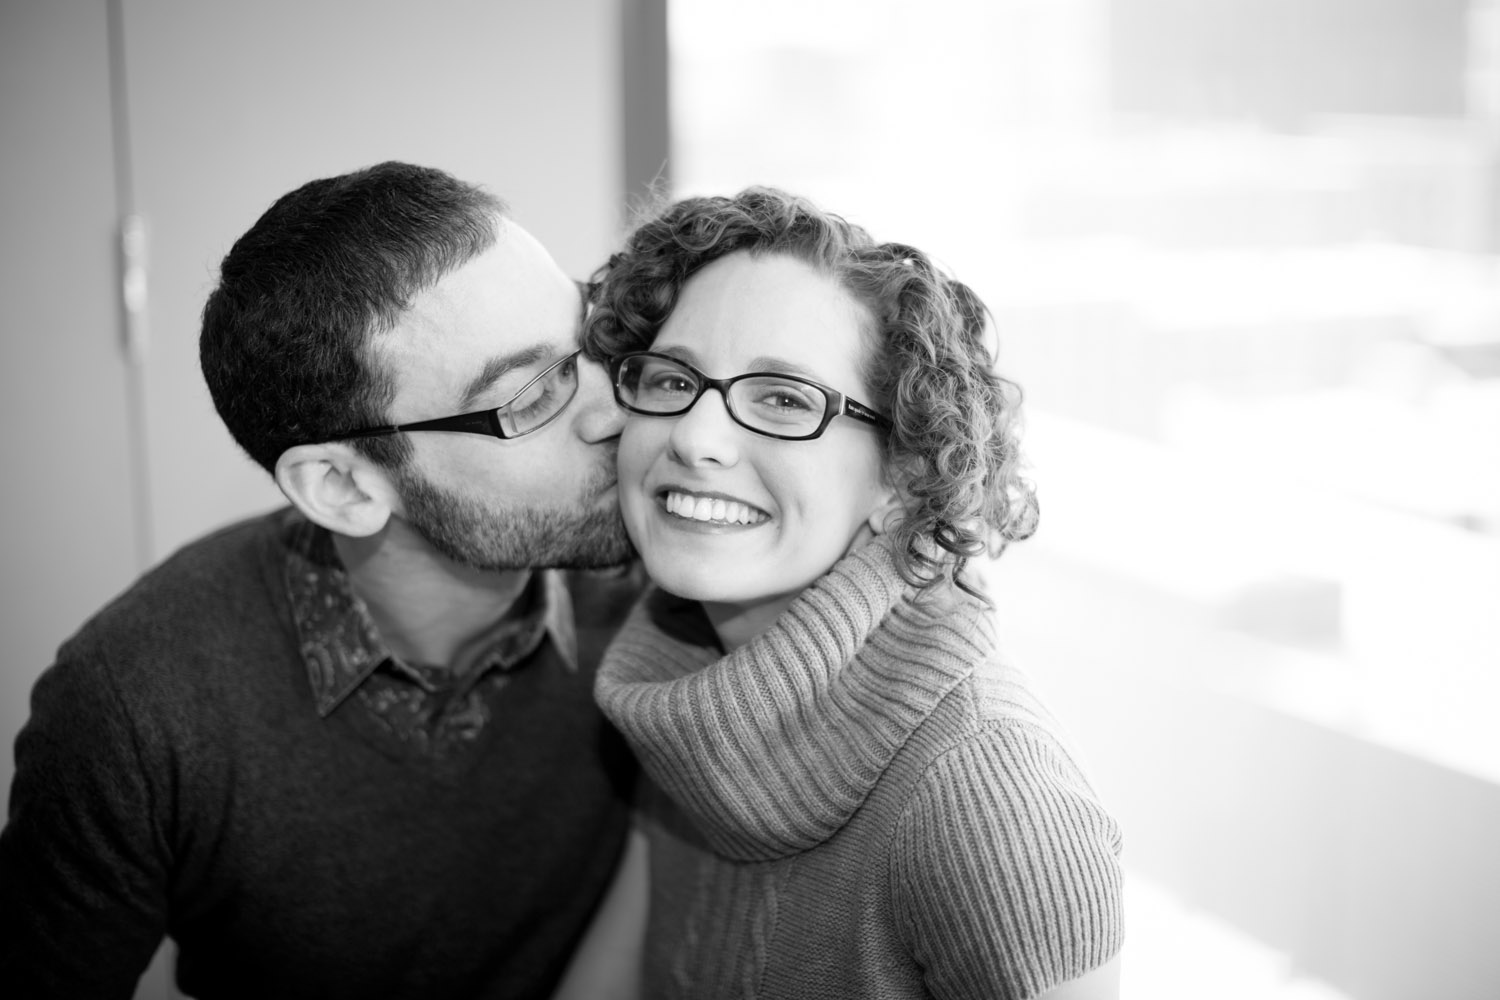 02-guthrie-theater-minneapolis-minnesota-winter-engagement-session-black-and-white-9th-floor-mahonen-photography.jpg